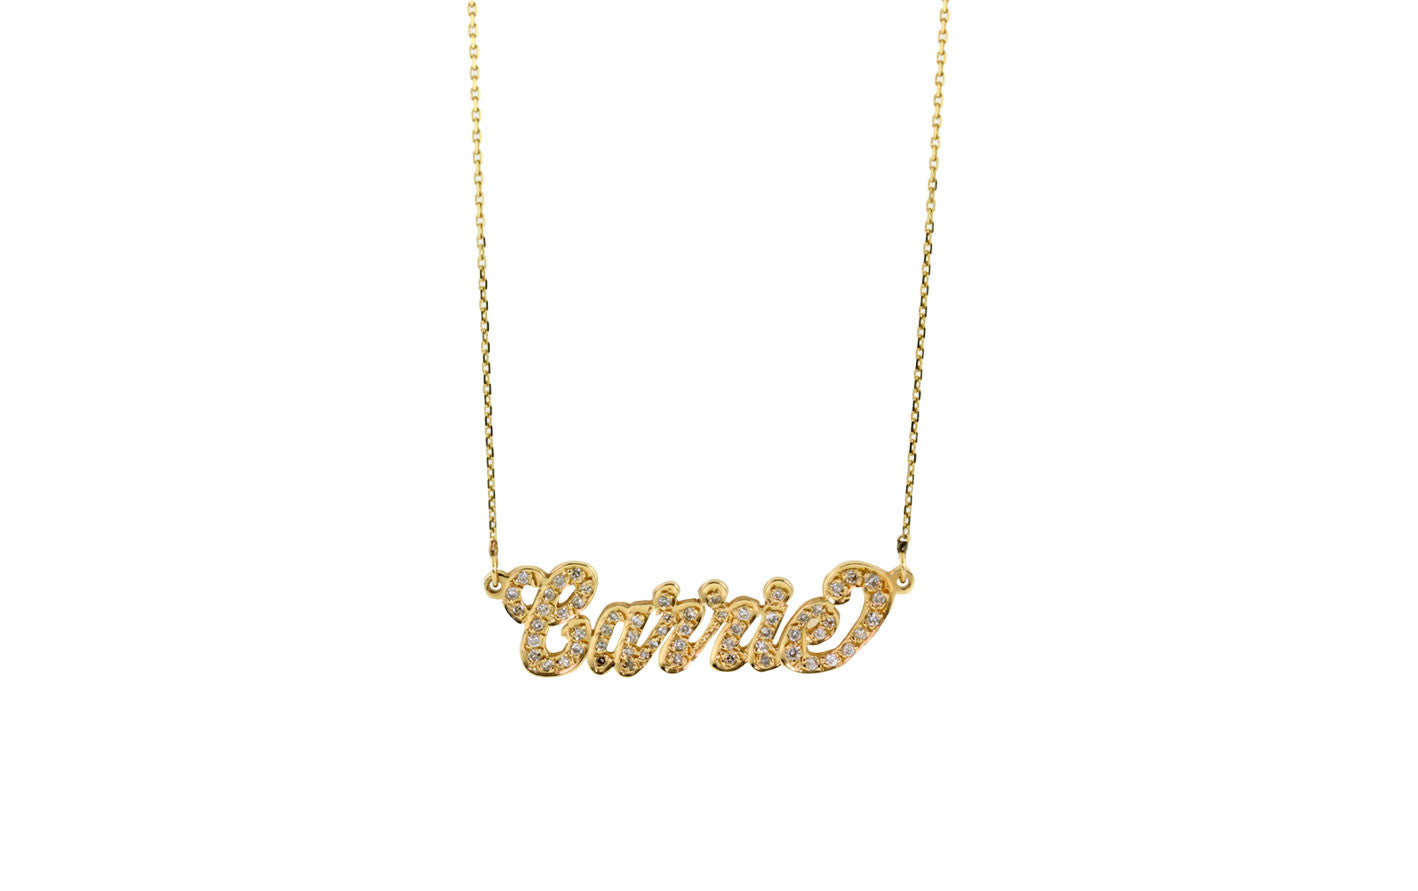 14KT GOLD /& DIAMOND NAME PLATE NECKLACE 18 INCHES NAME PLATE NECKLACE